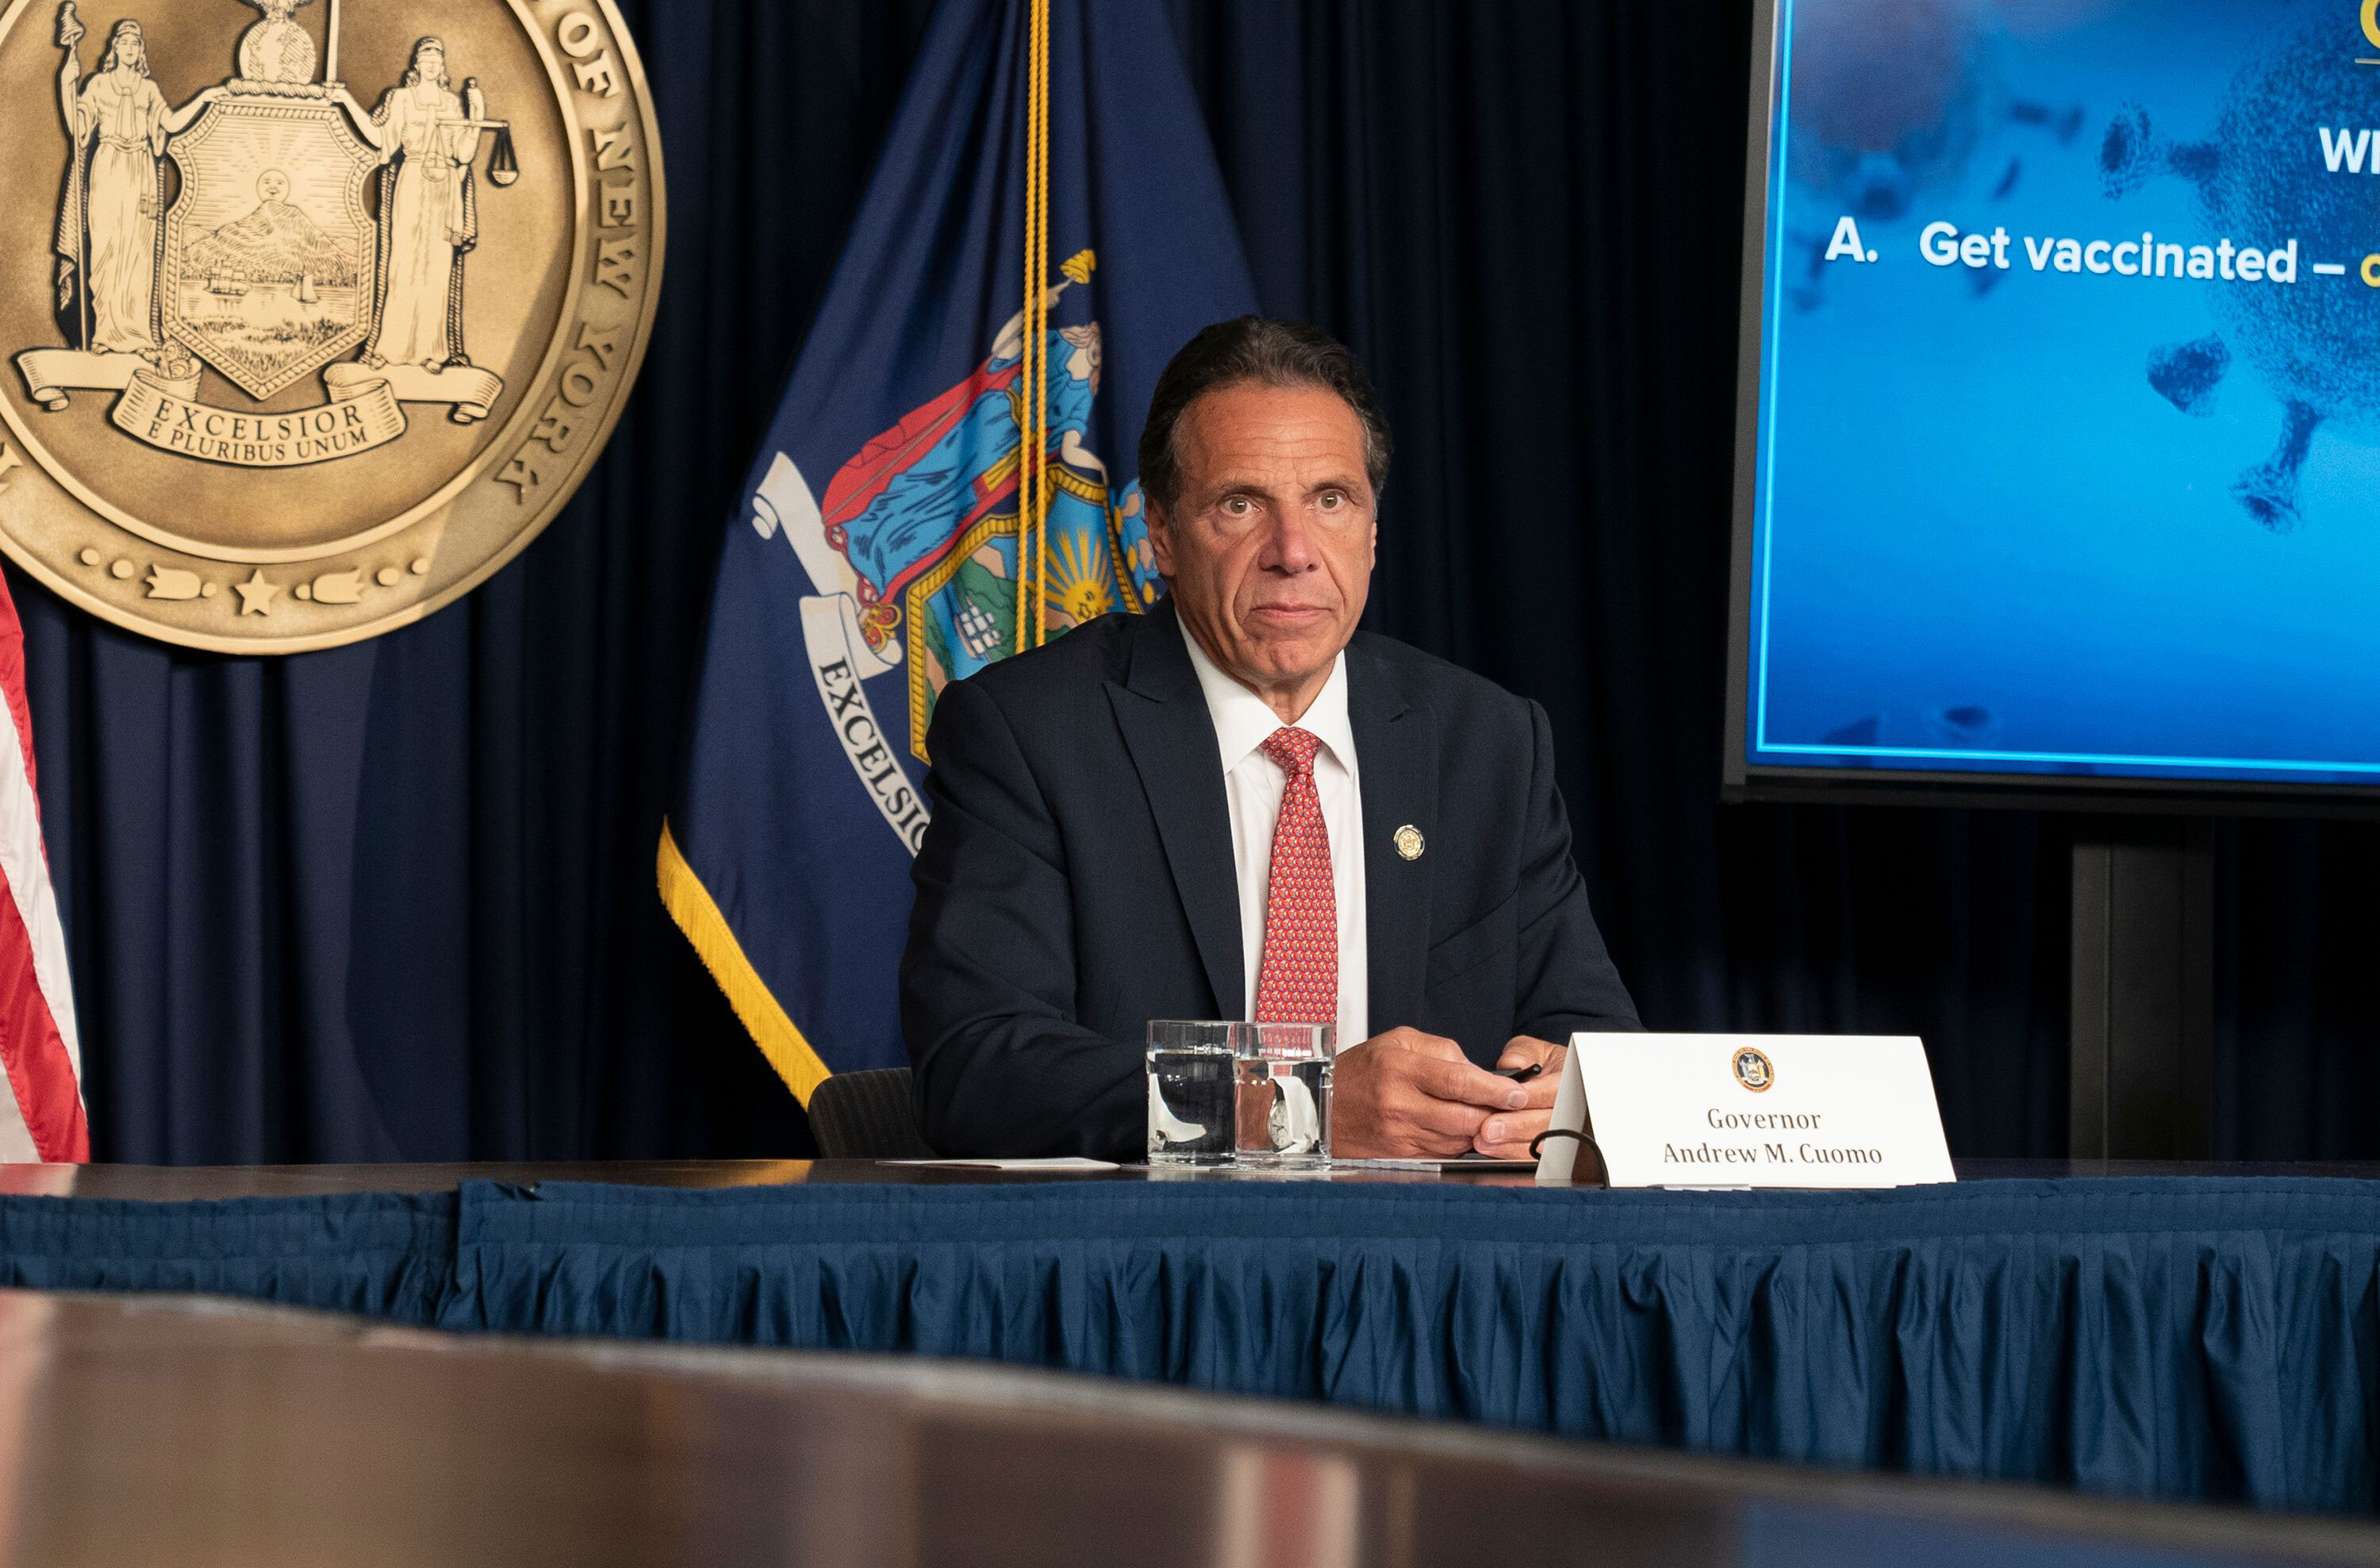 New York state impeachment investigation into Cuomo is 'nearing completion'